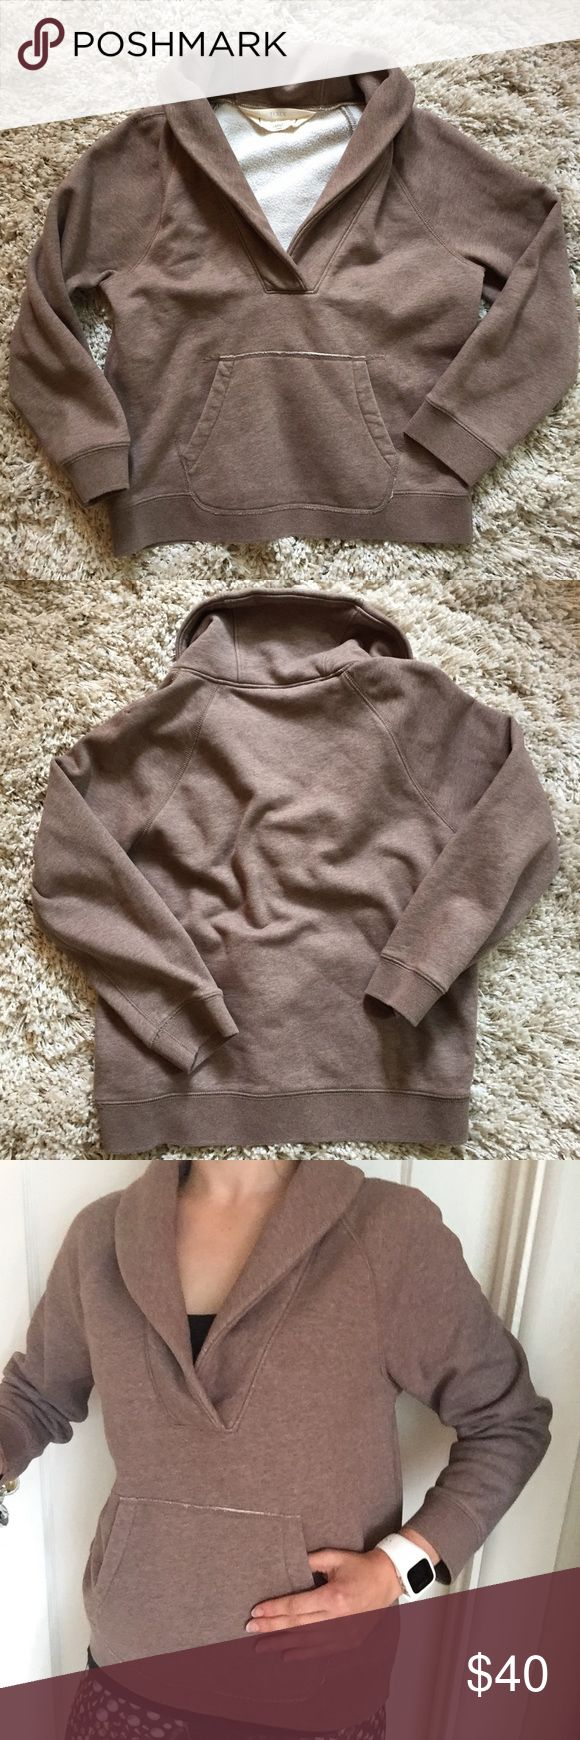 Like 🆕 J. Crew Sweater, Size L + Deep overlapped V-neckline  + 70% cotton, 30% polyester  + I normally wear a MED and this fits me well + Great for fall 🍁🍂 + Don't forget to bundle!   ⭐️All items are steamed cleaned and shipped within 48 hours of your purchase.   ⭐️If you would like any additional photos or have any questions please let me know.  ⭐️Sorry, no trades. But will listen to ALL fair offers. Thanks for shopping! J. Crew Sweaters V-Necks